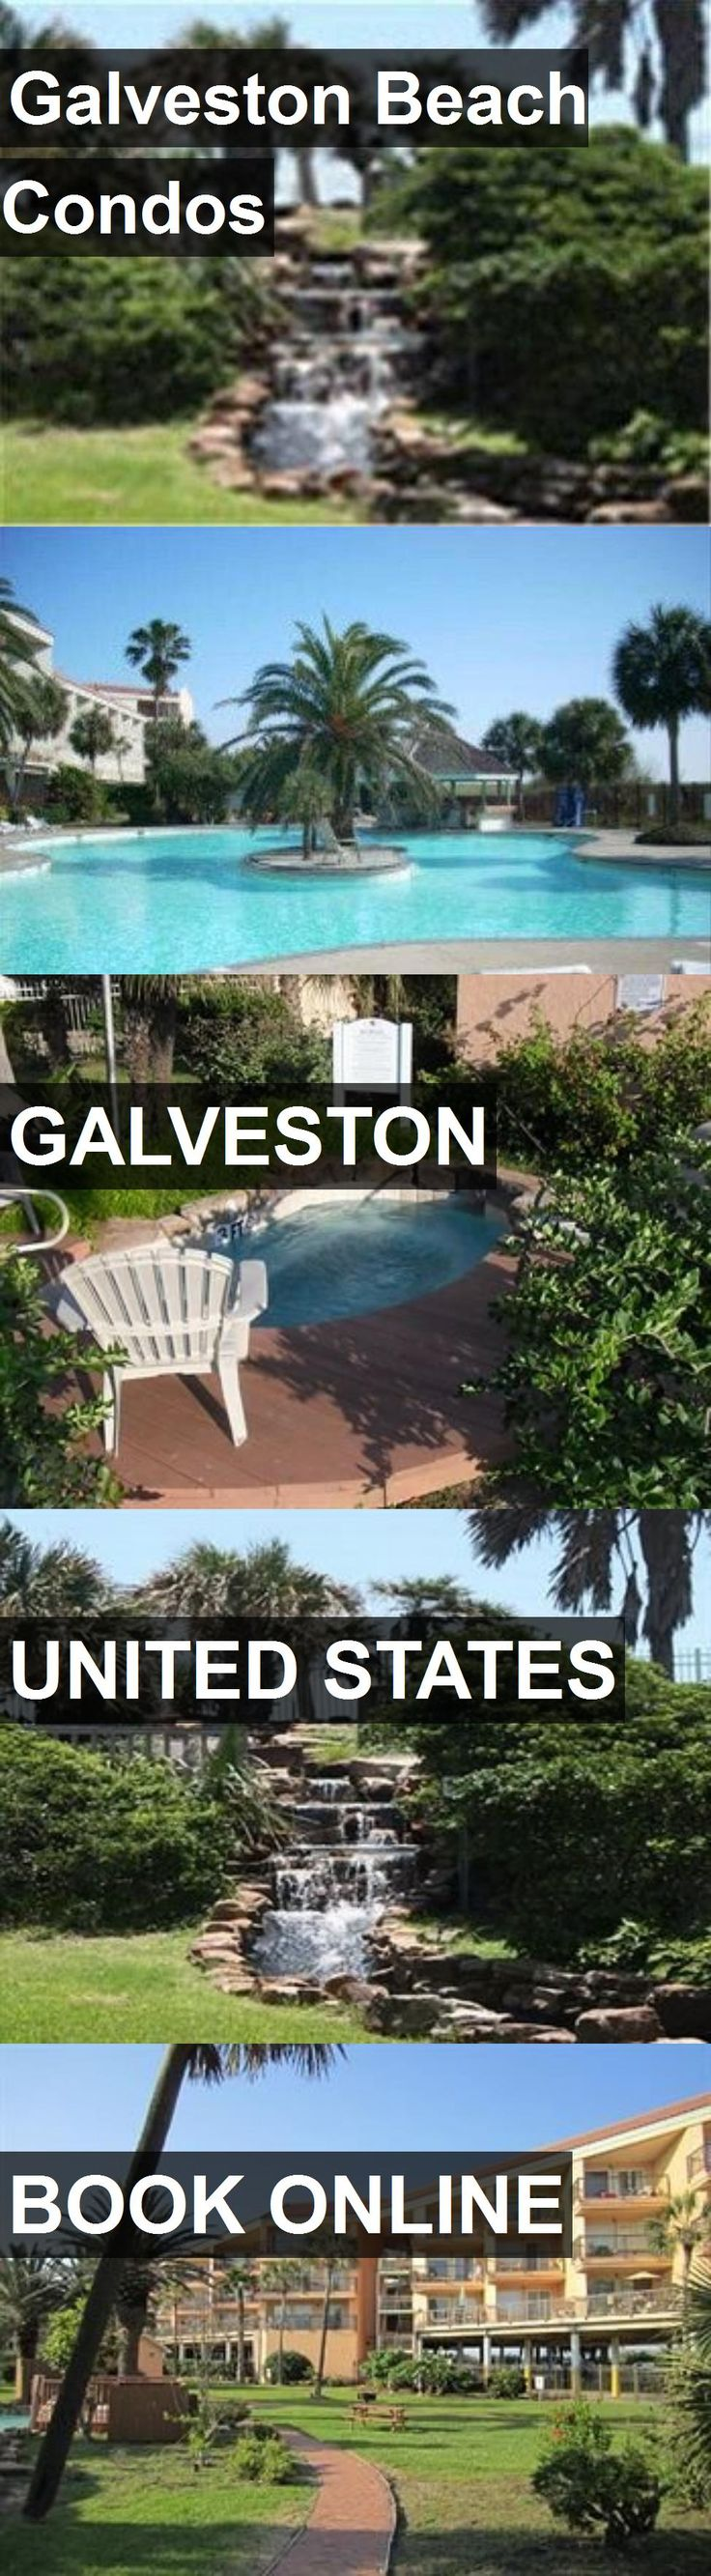 Hotel Galveston Beach Condos in Galveston, United States. For more information, photos, reviews and best prices please follow the link. #UnitedStates #Galveston #travel #vacation #hotel